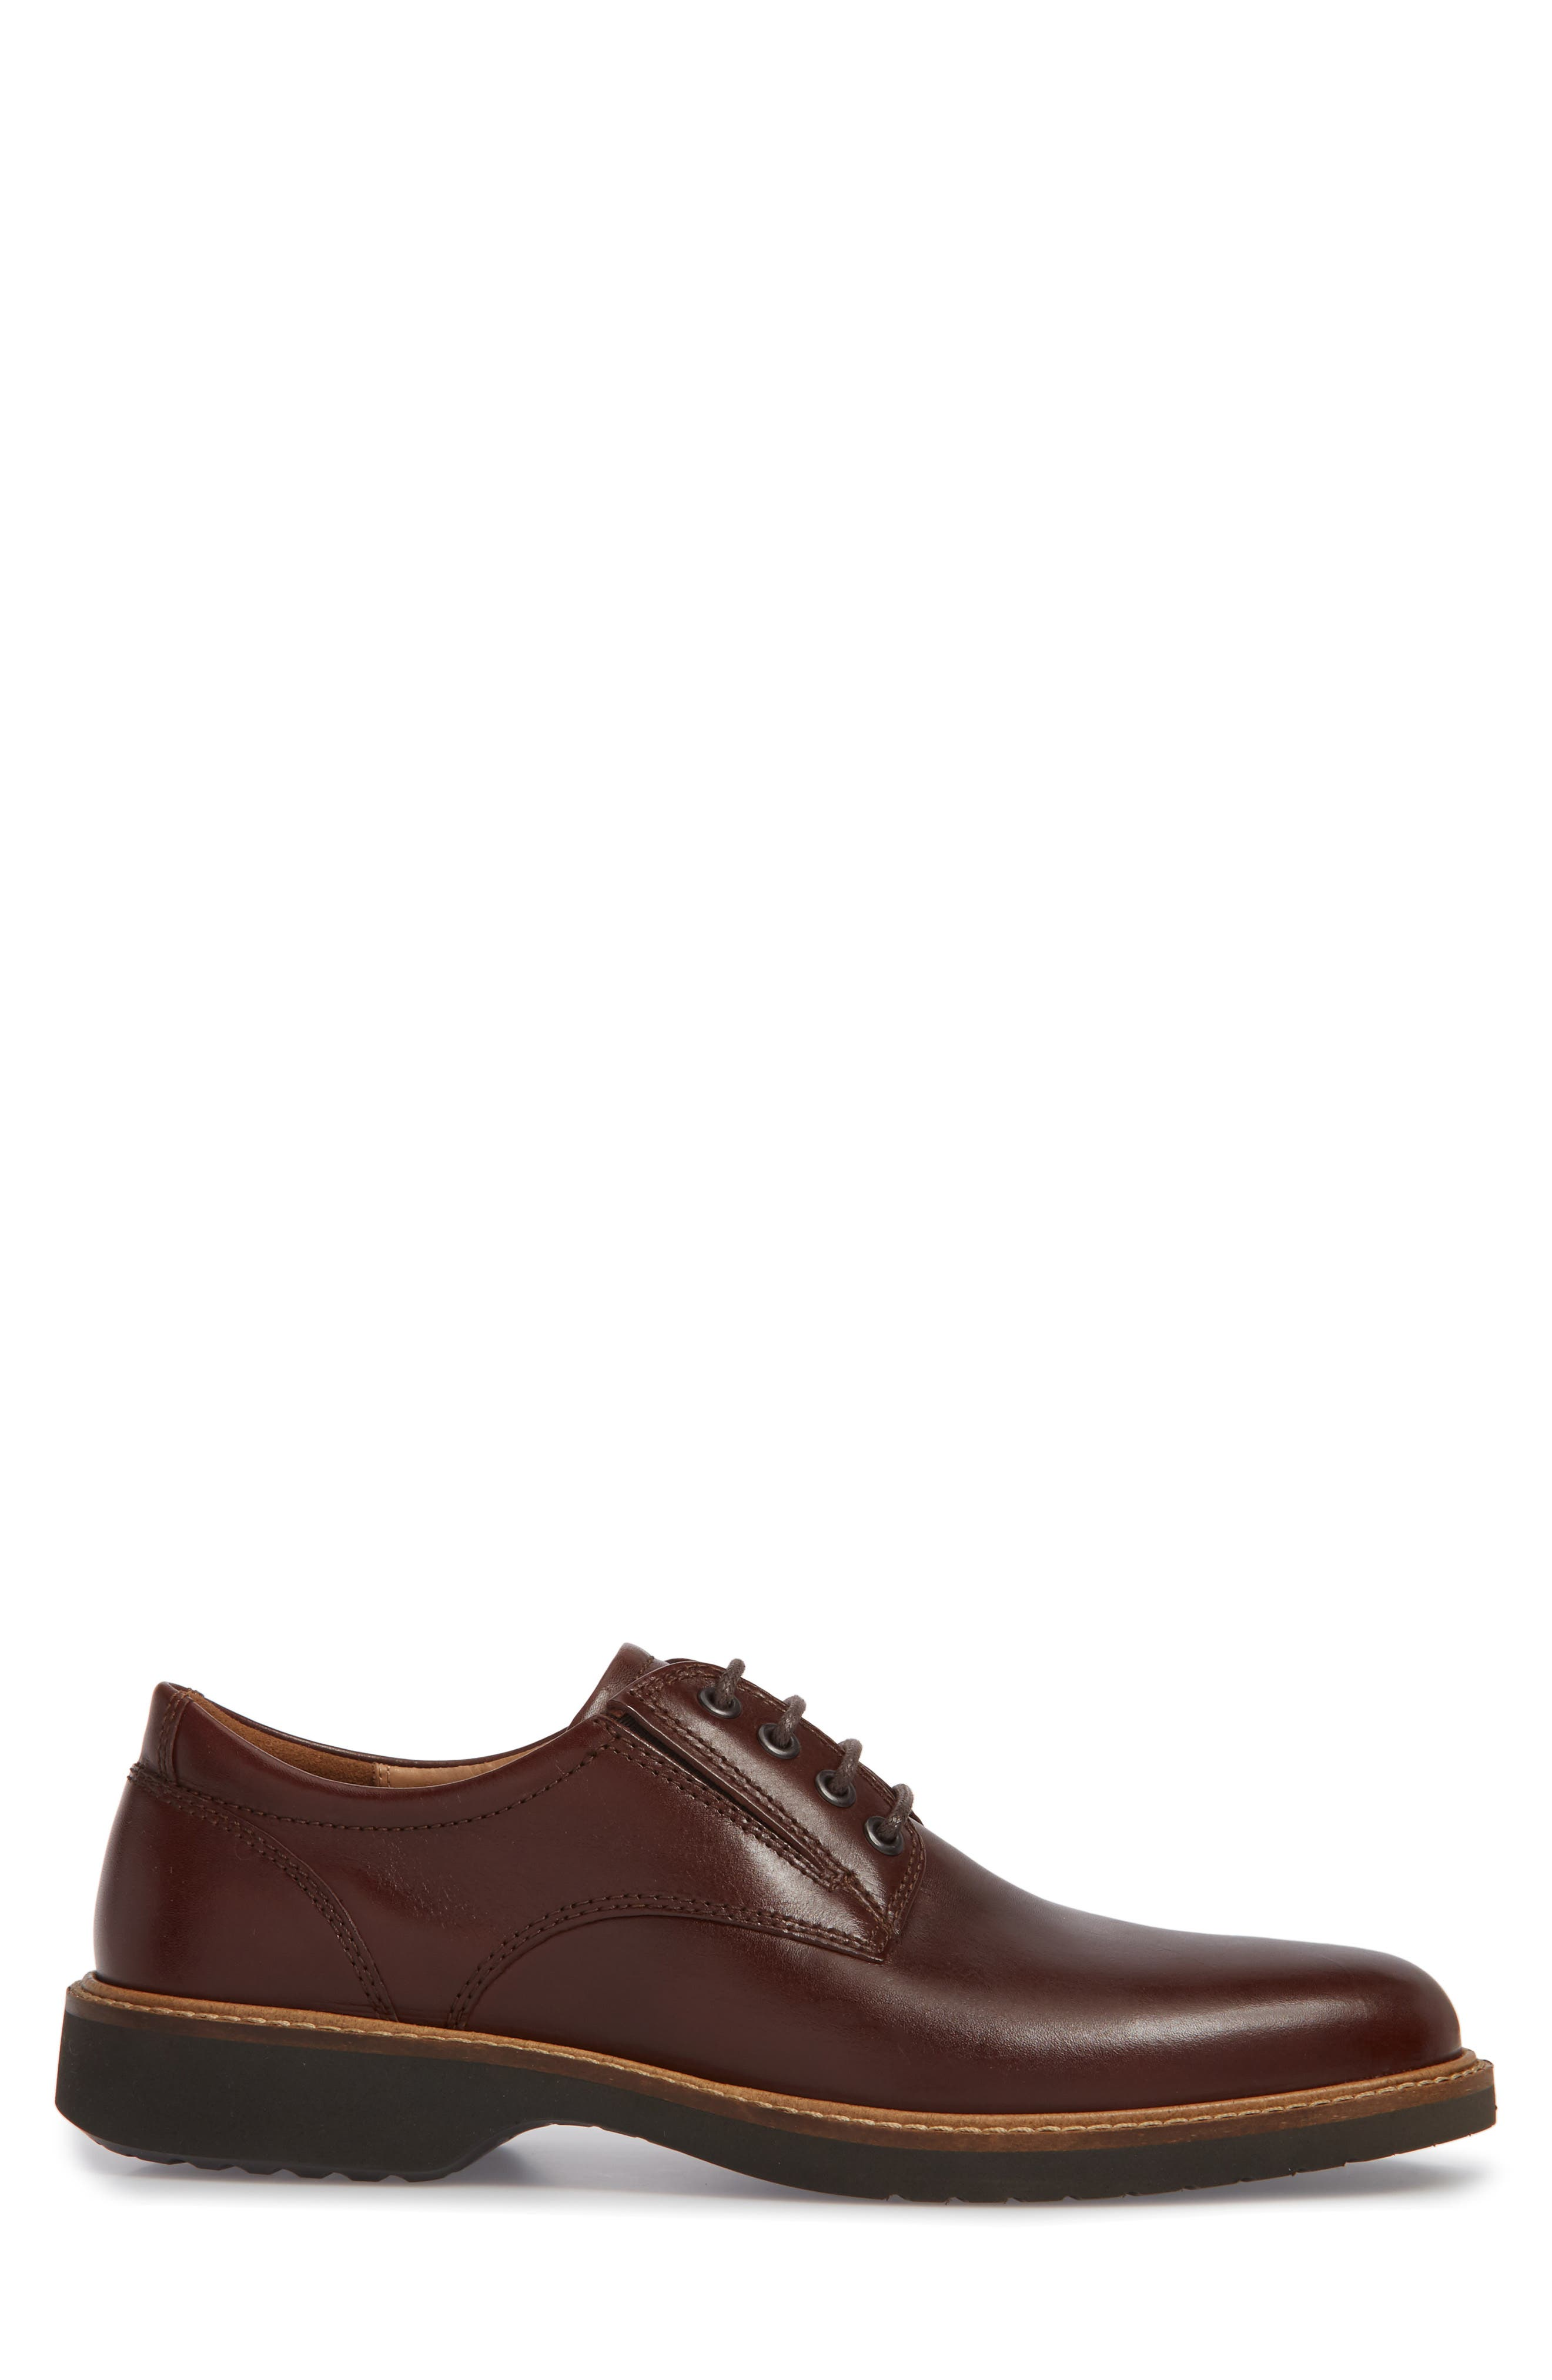 Ian Casual Plain Toe Derby,                             Alternate thumbnail 3, color,                             Mink Leather